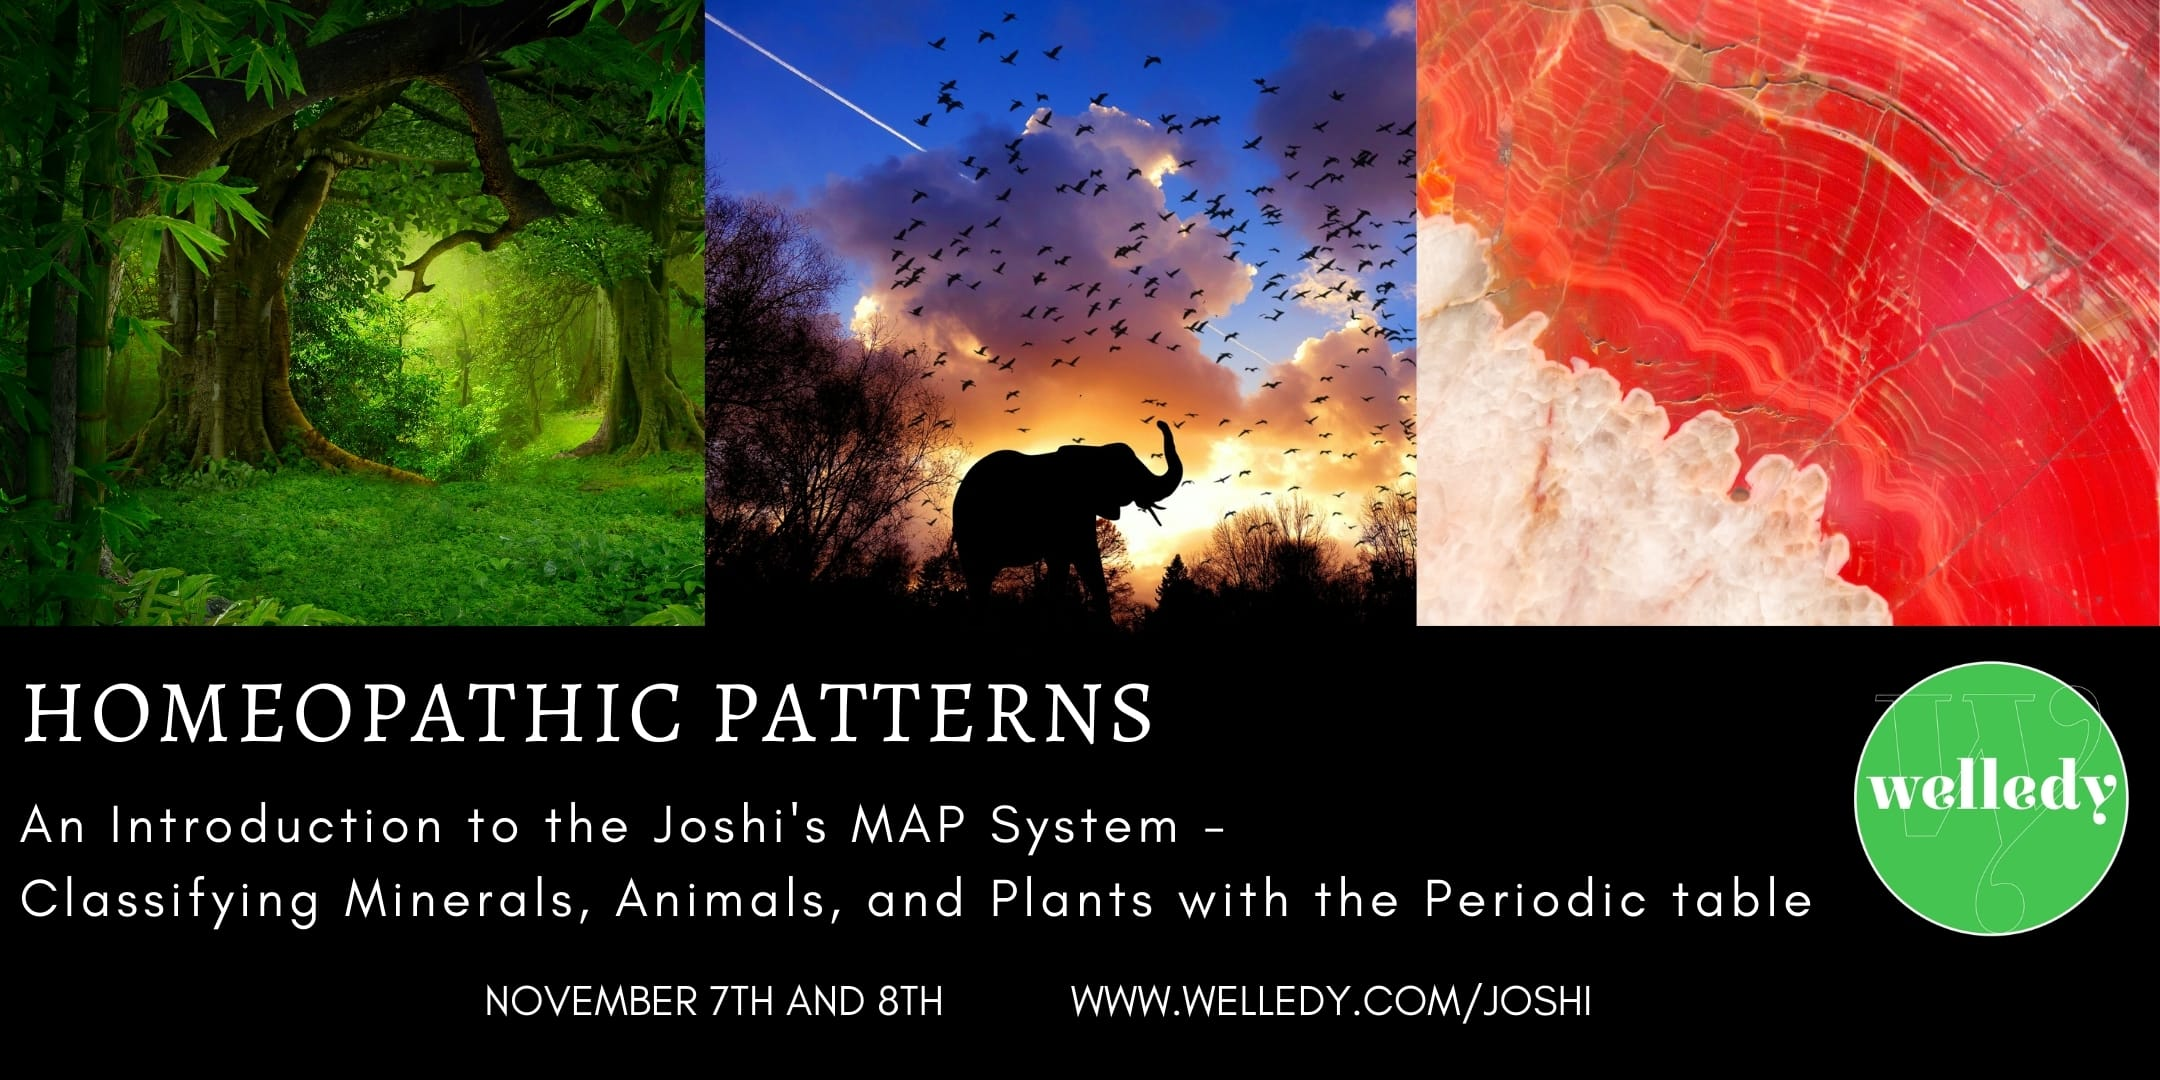 Homeopathic patterns: an introduction to the Joshi MAP system, 7th and 8th November 2020